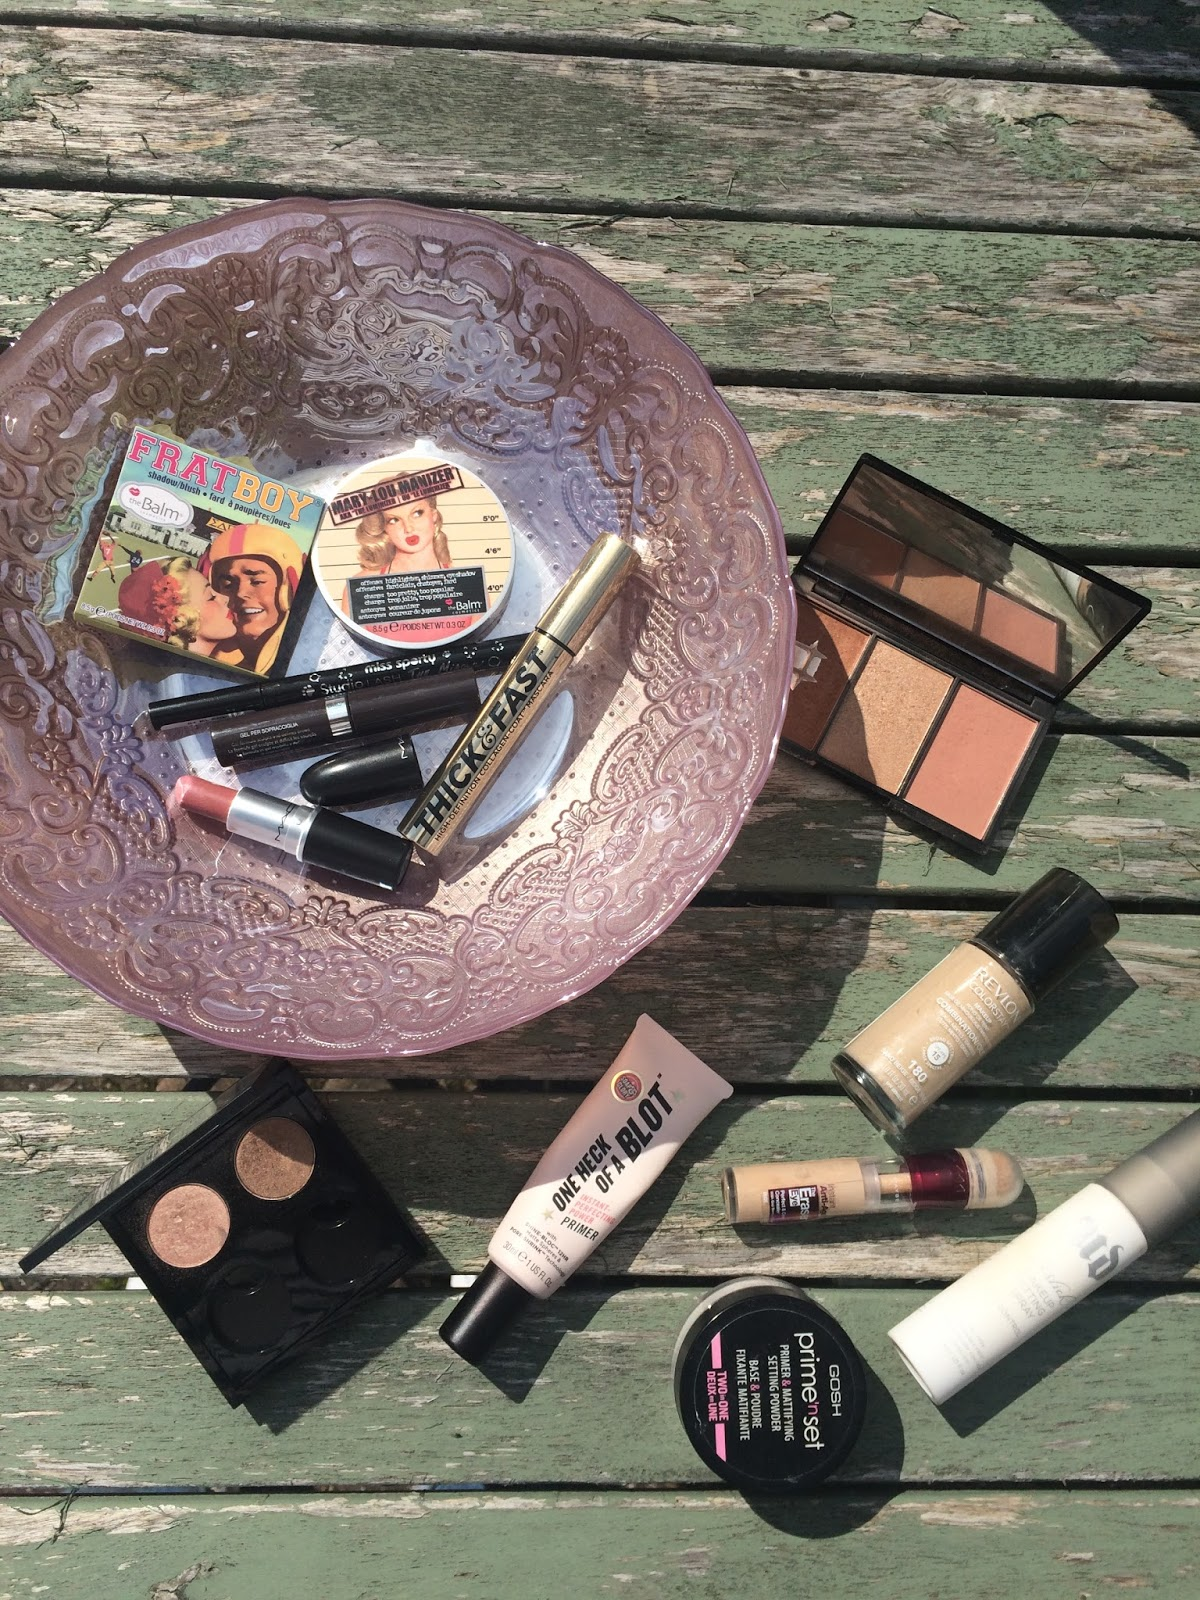 Everyday makeup featuring Mac , Revlon , Soap & Glory, Makeup revolution and The Balm